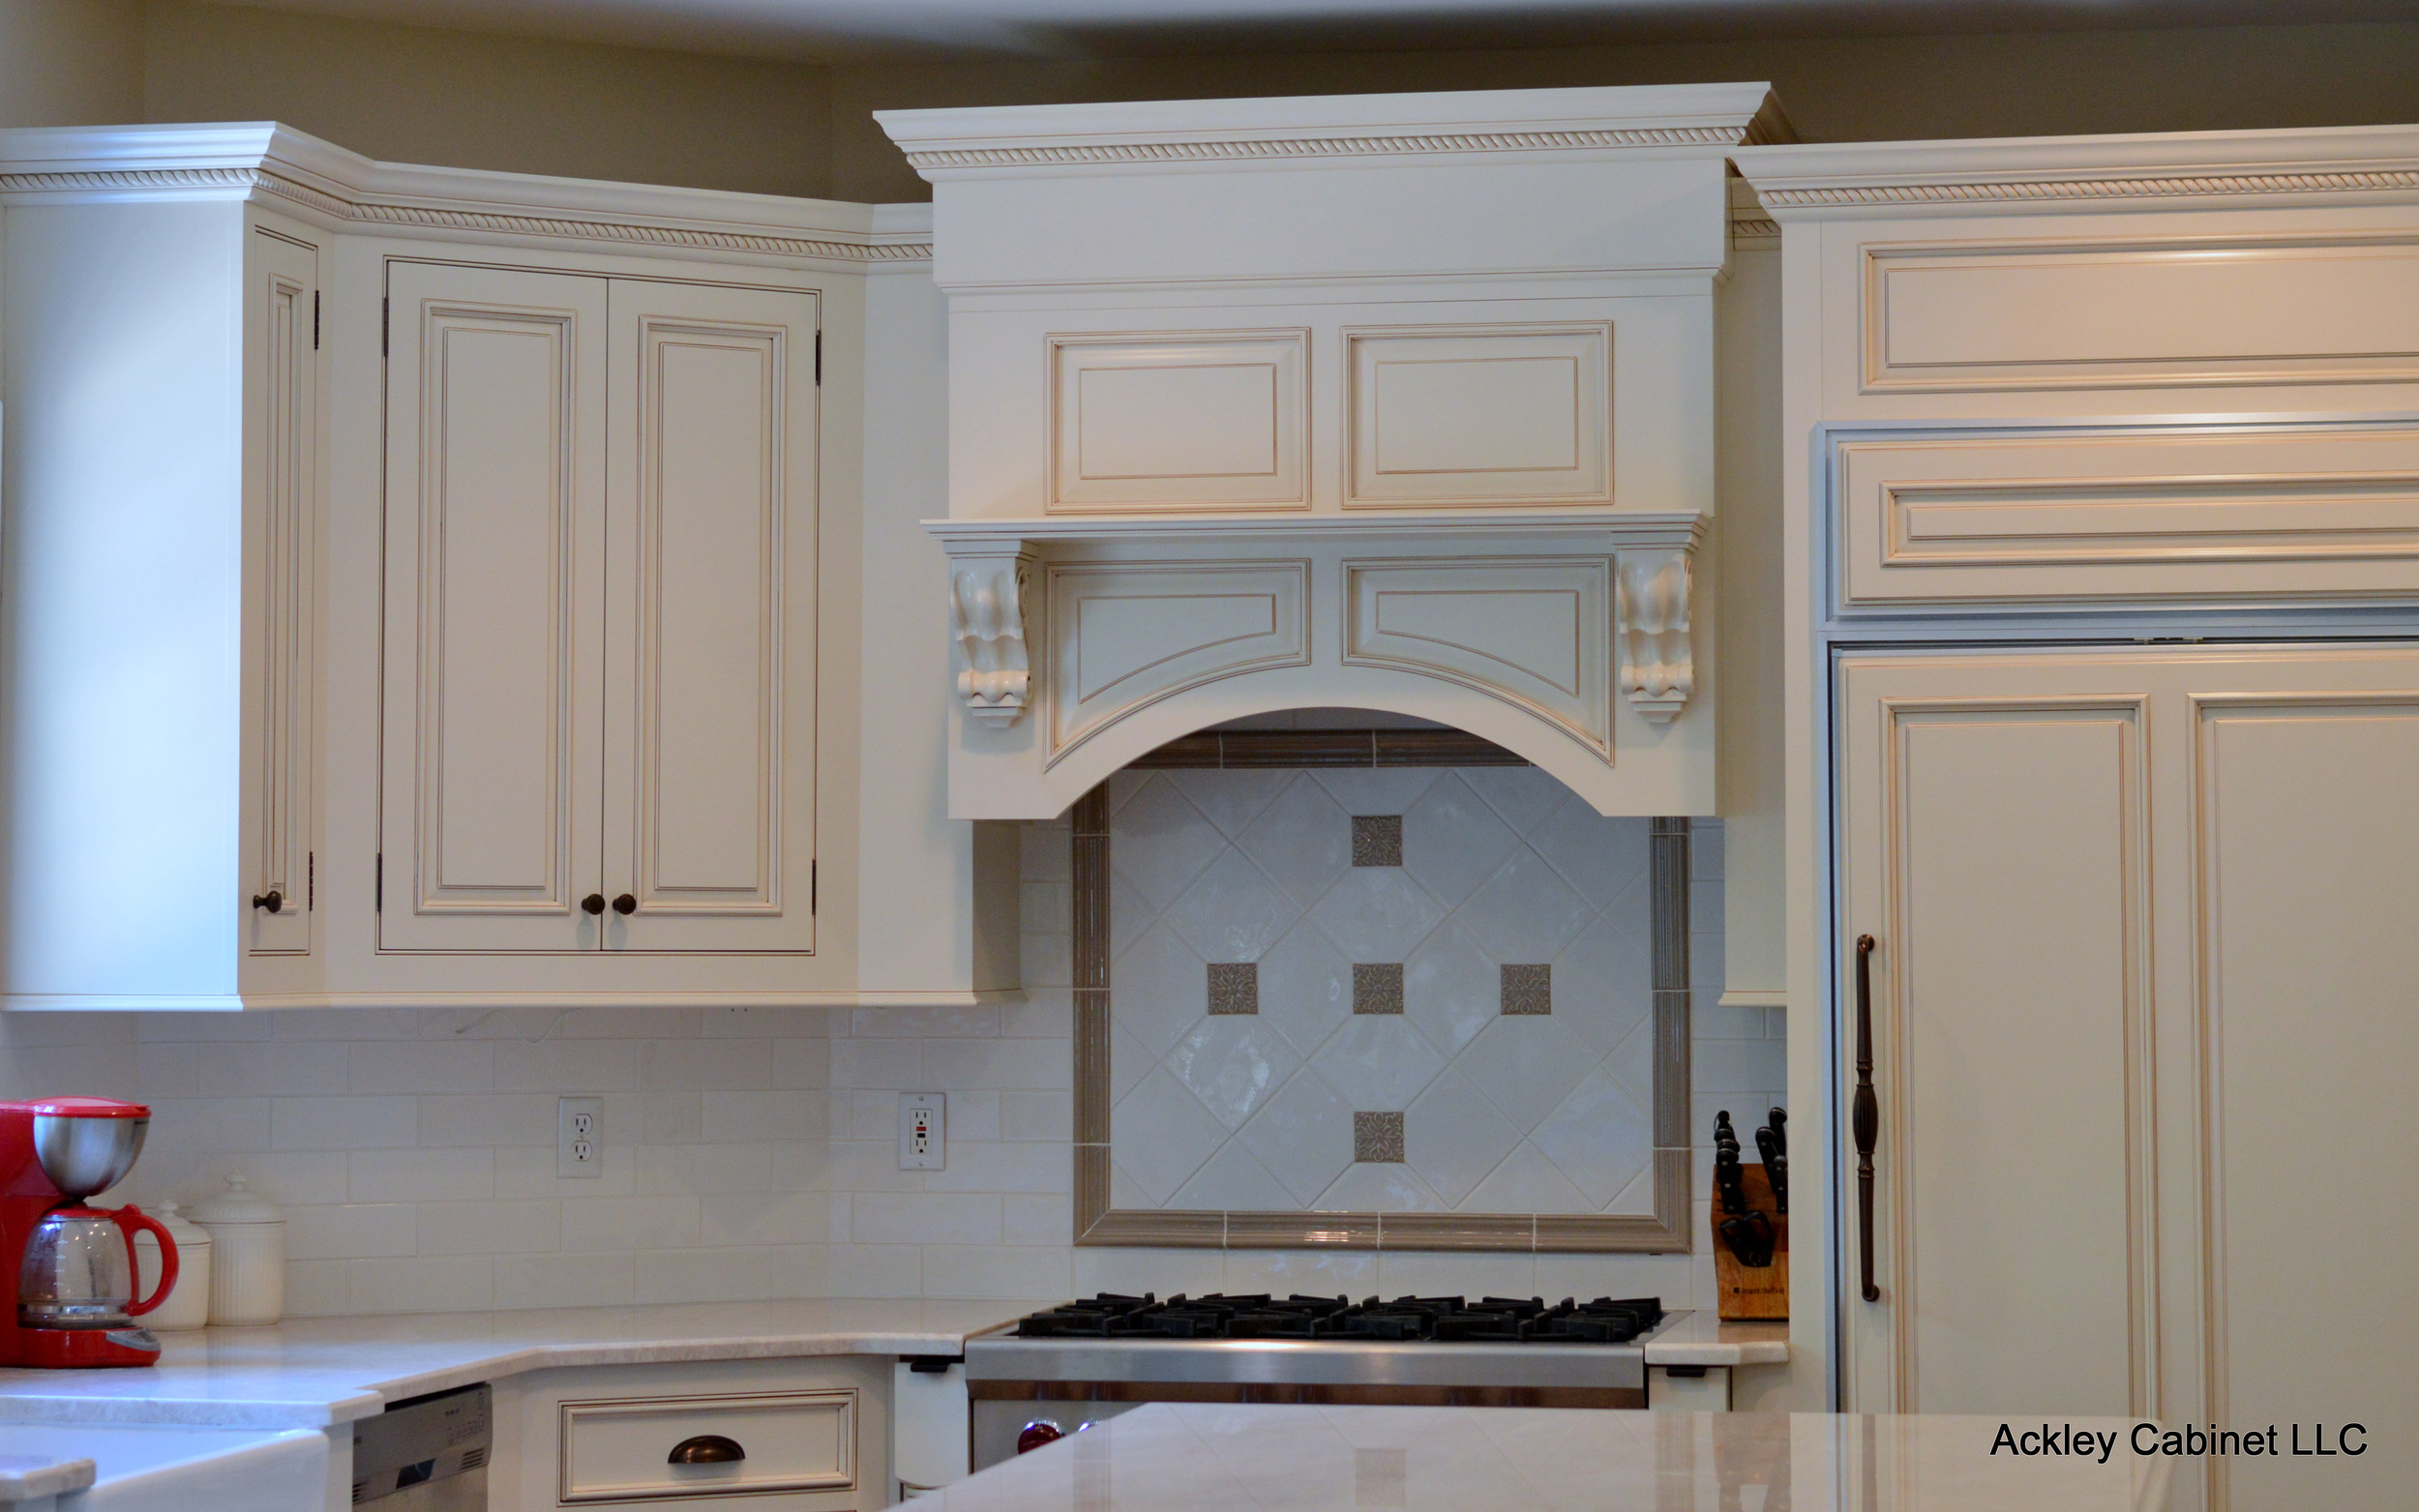 Custom Cabinet Hood and Patterned Tile Backsplash